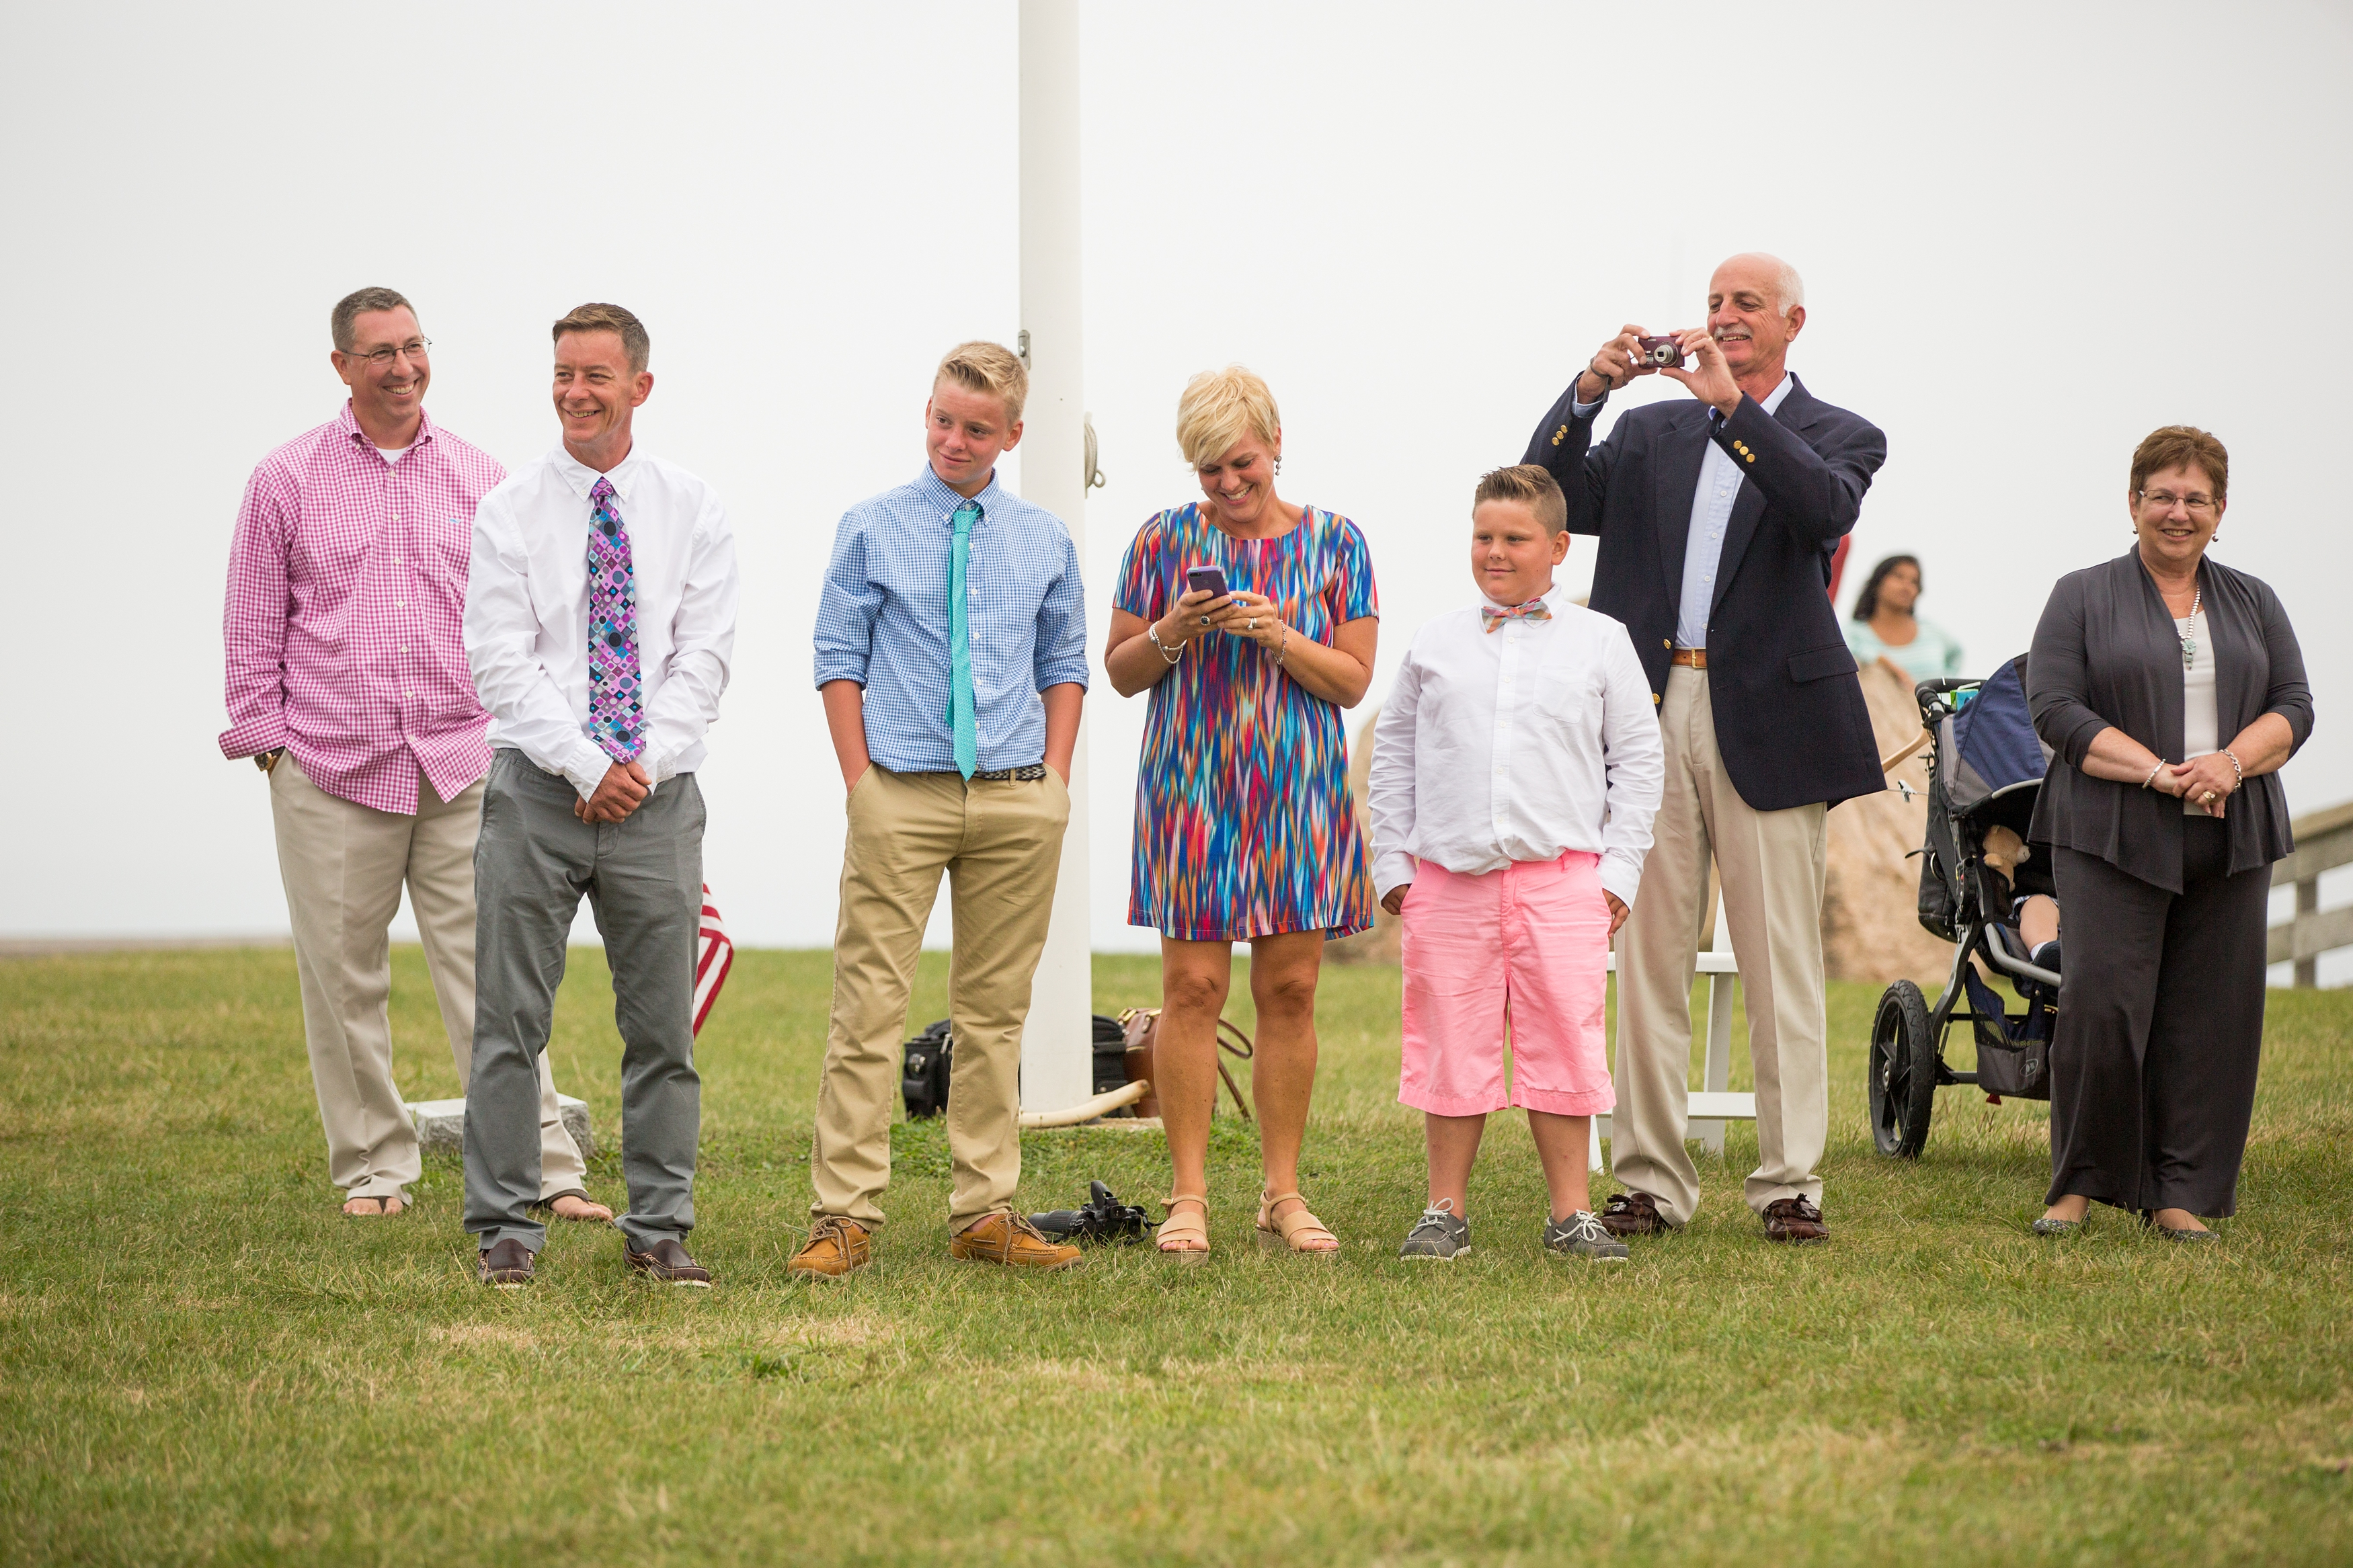 allegra_anderson_photography_block_island_rhode_island_wedding_photographer_spring_house_odell_2016158